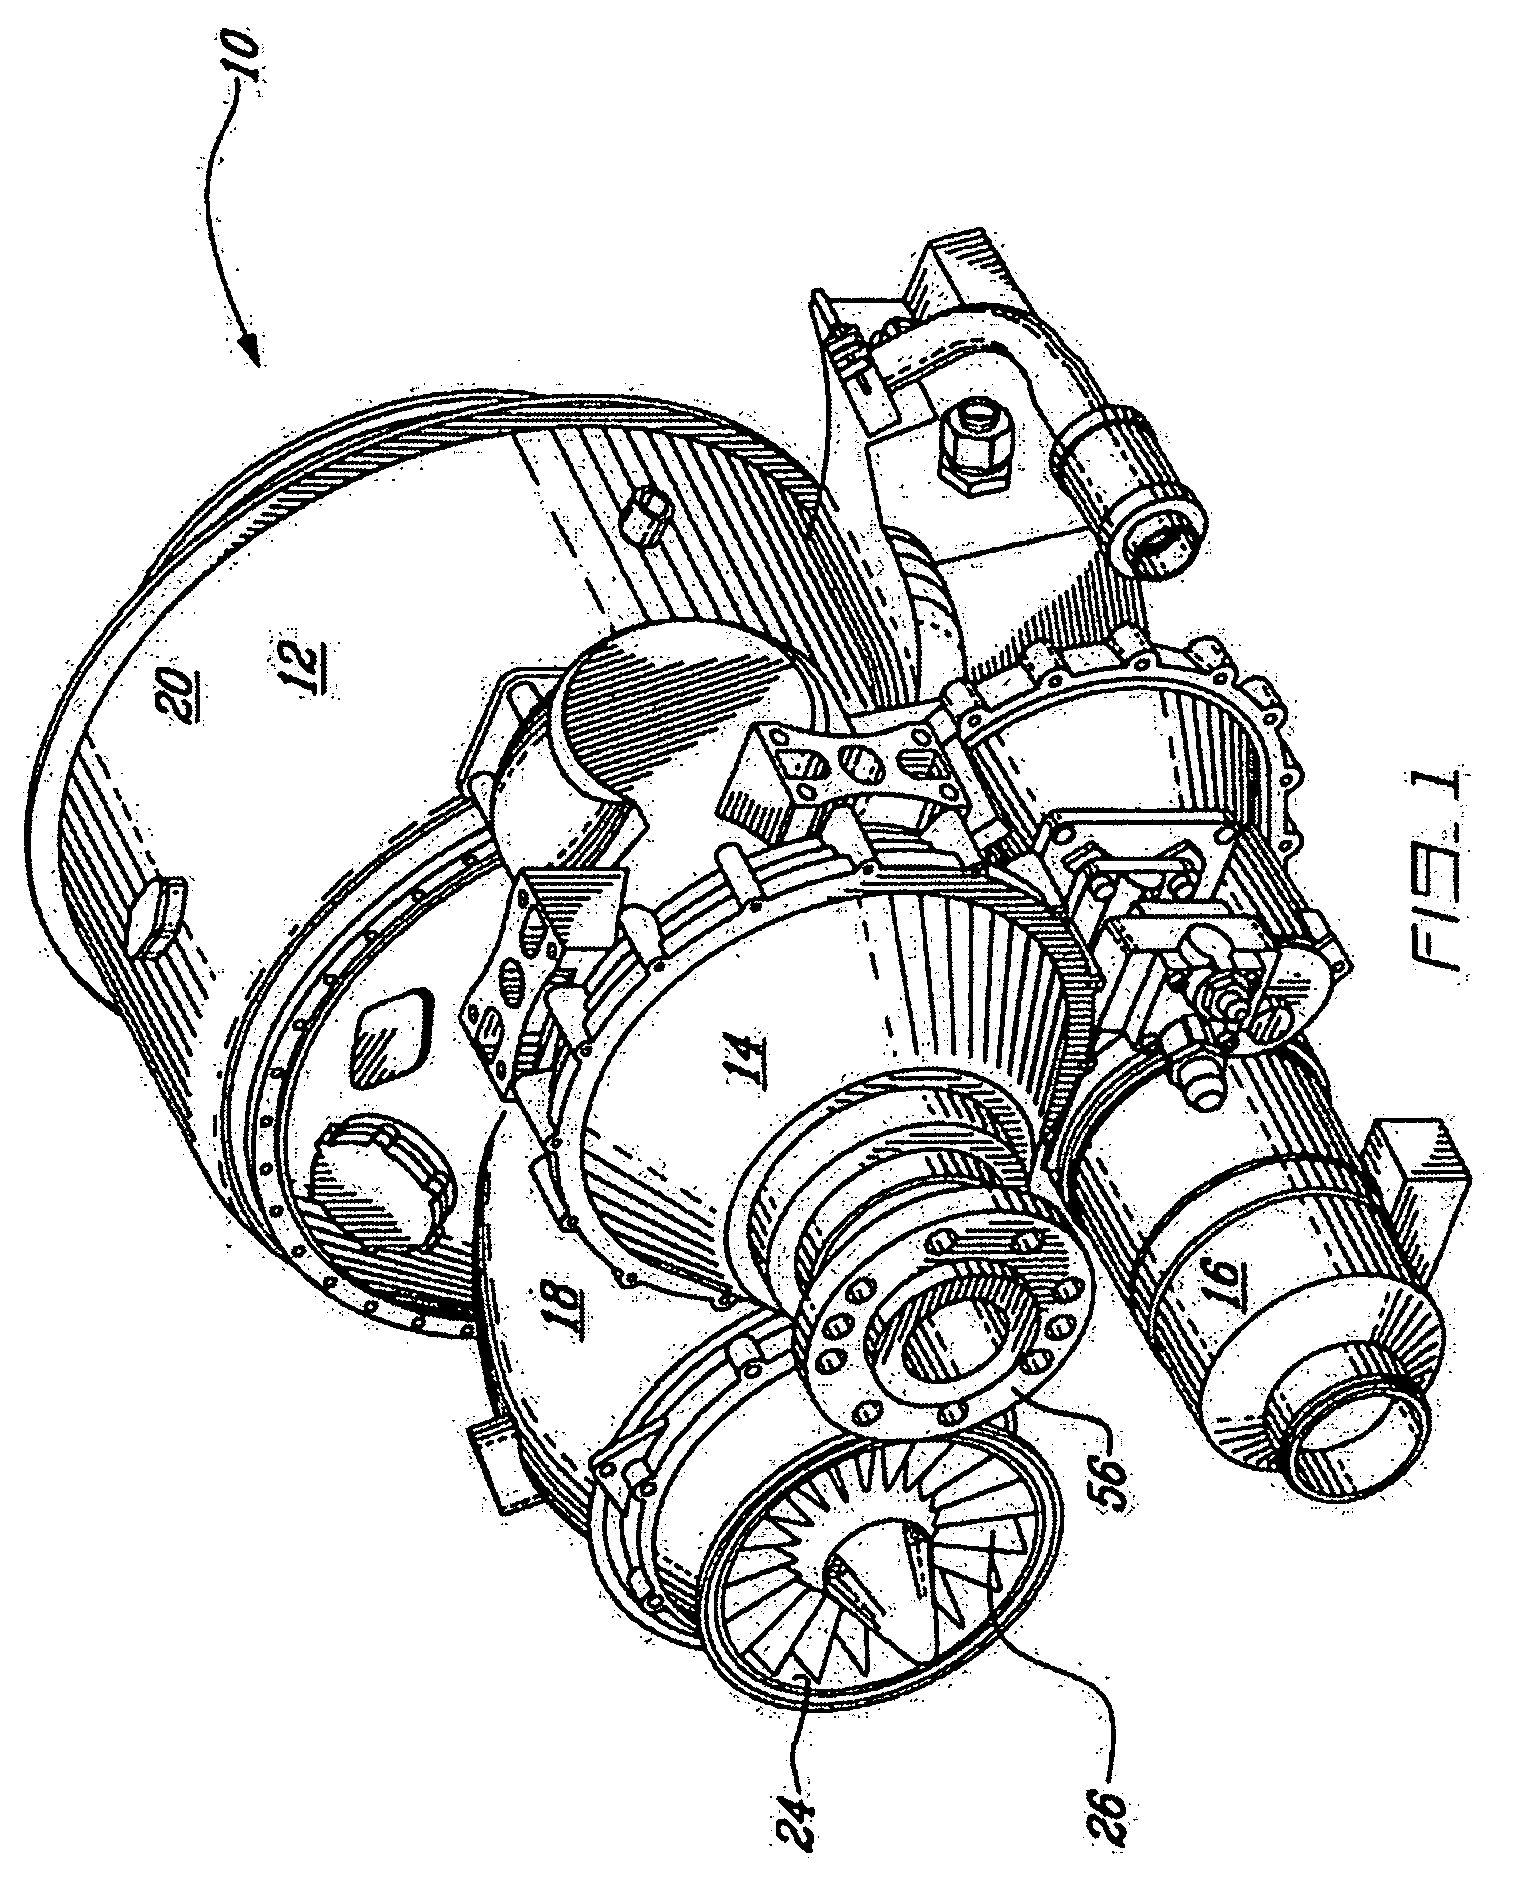 Patent US fset drive for gas turbine engine